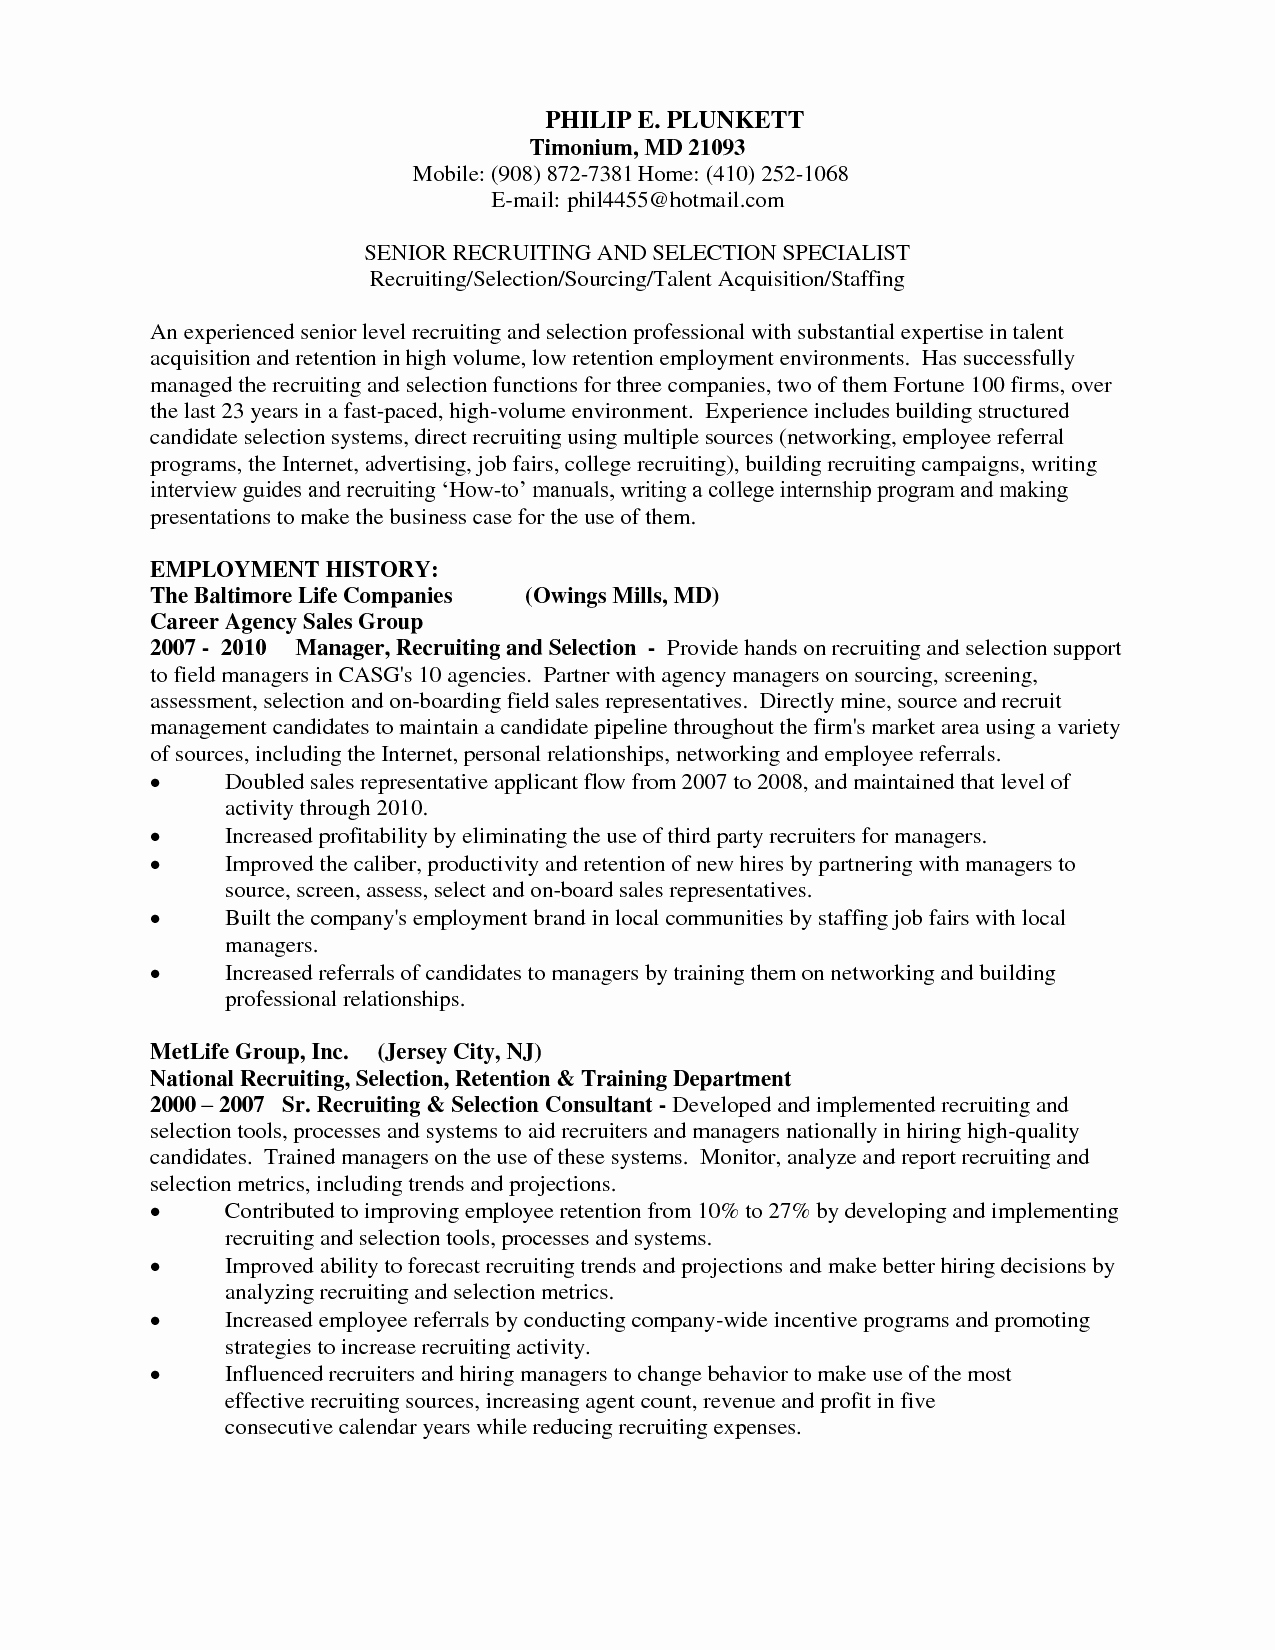 Information Technology Cover Letter Template Samples Letter Templates